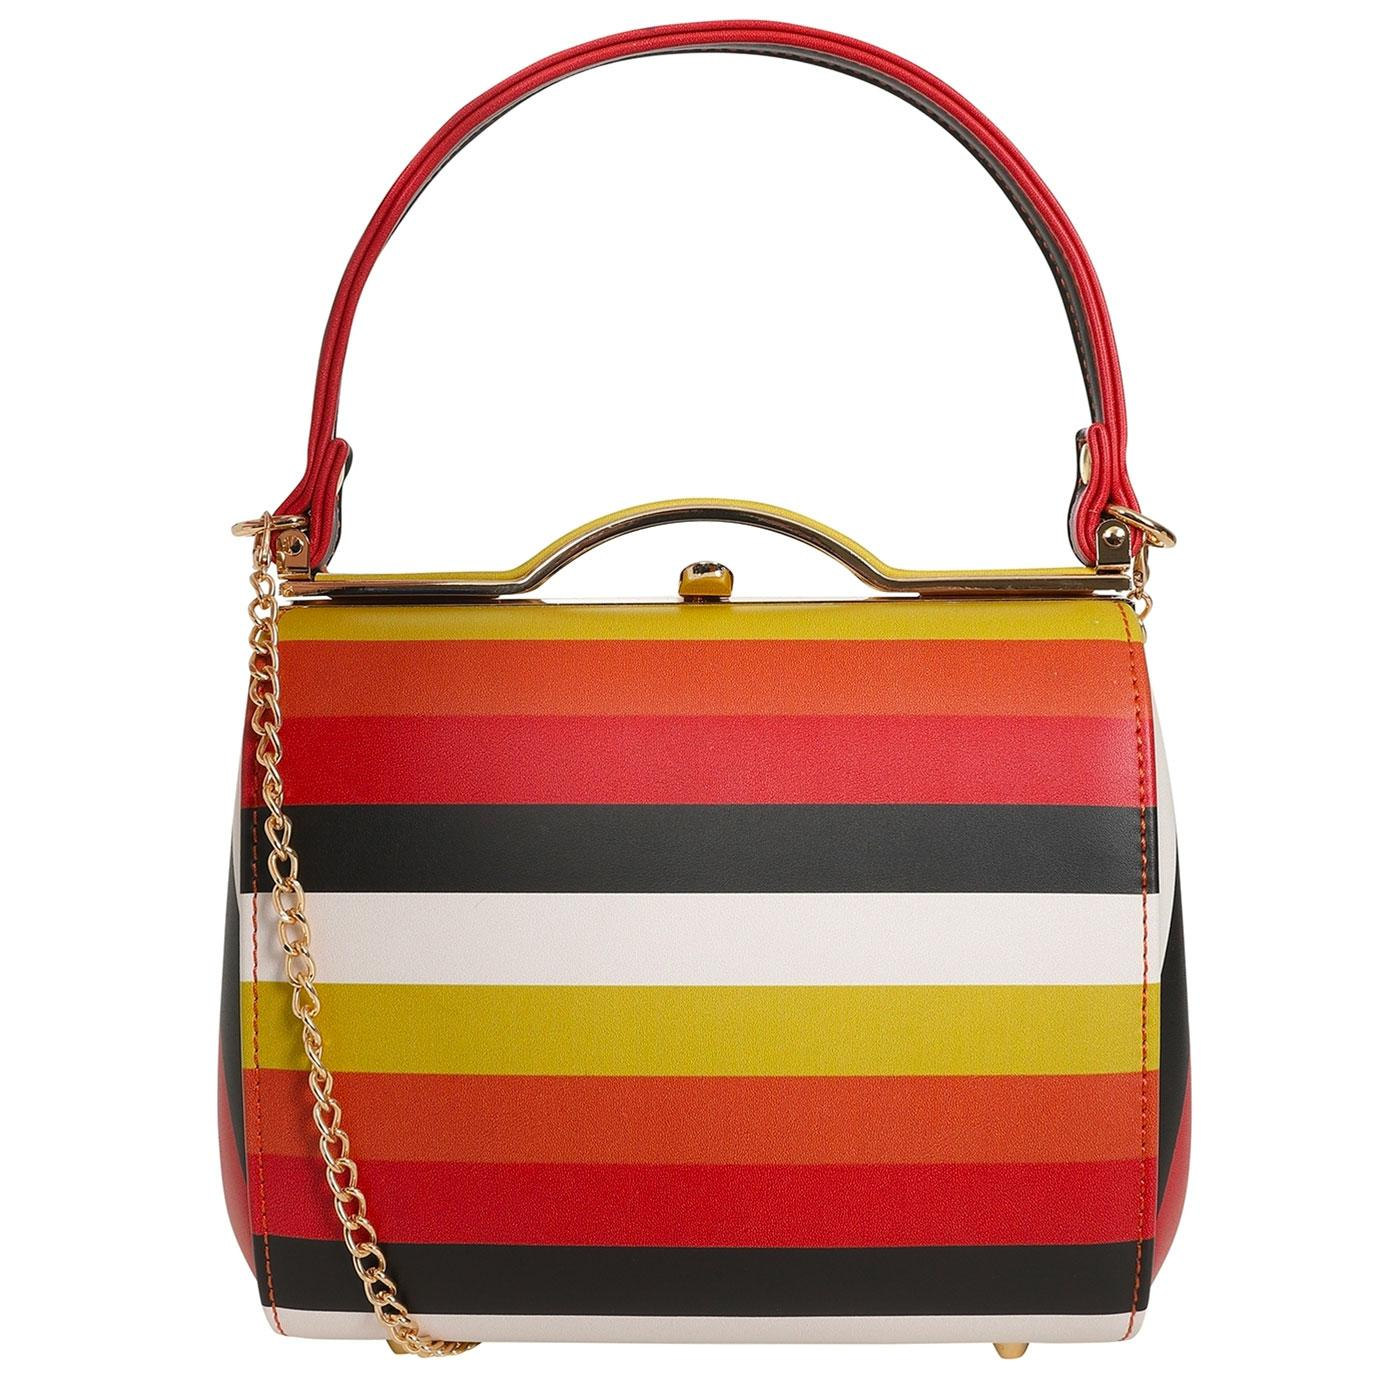 Carrie COLLECTIF Vintage 50s Style Striped Handbag